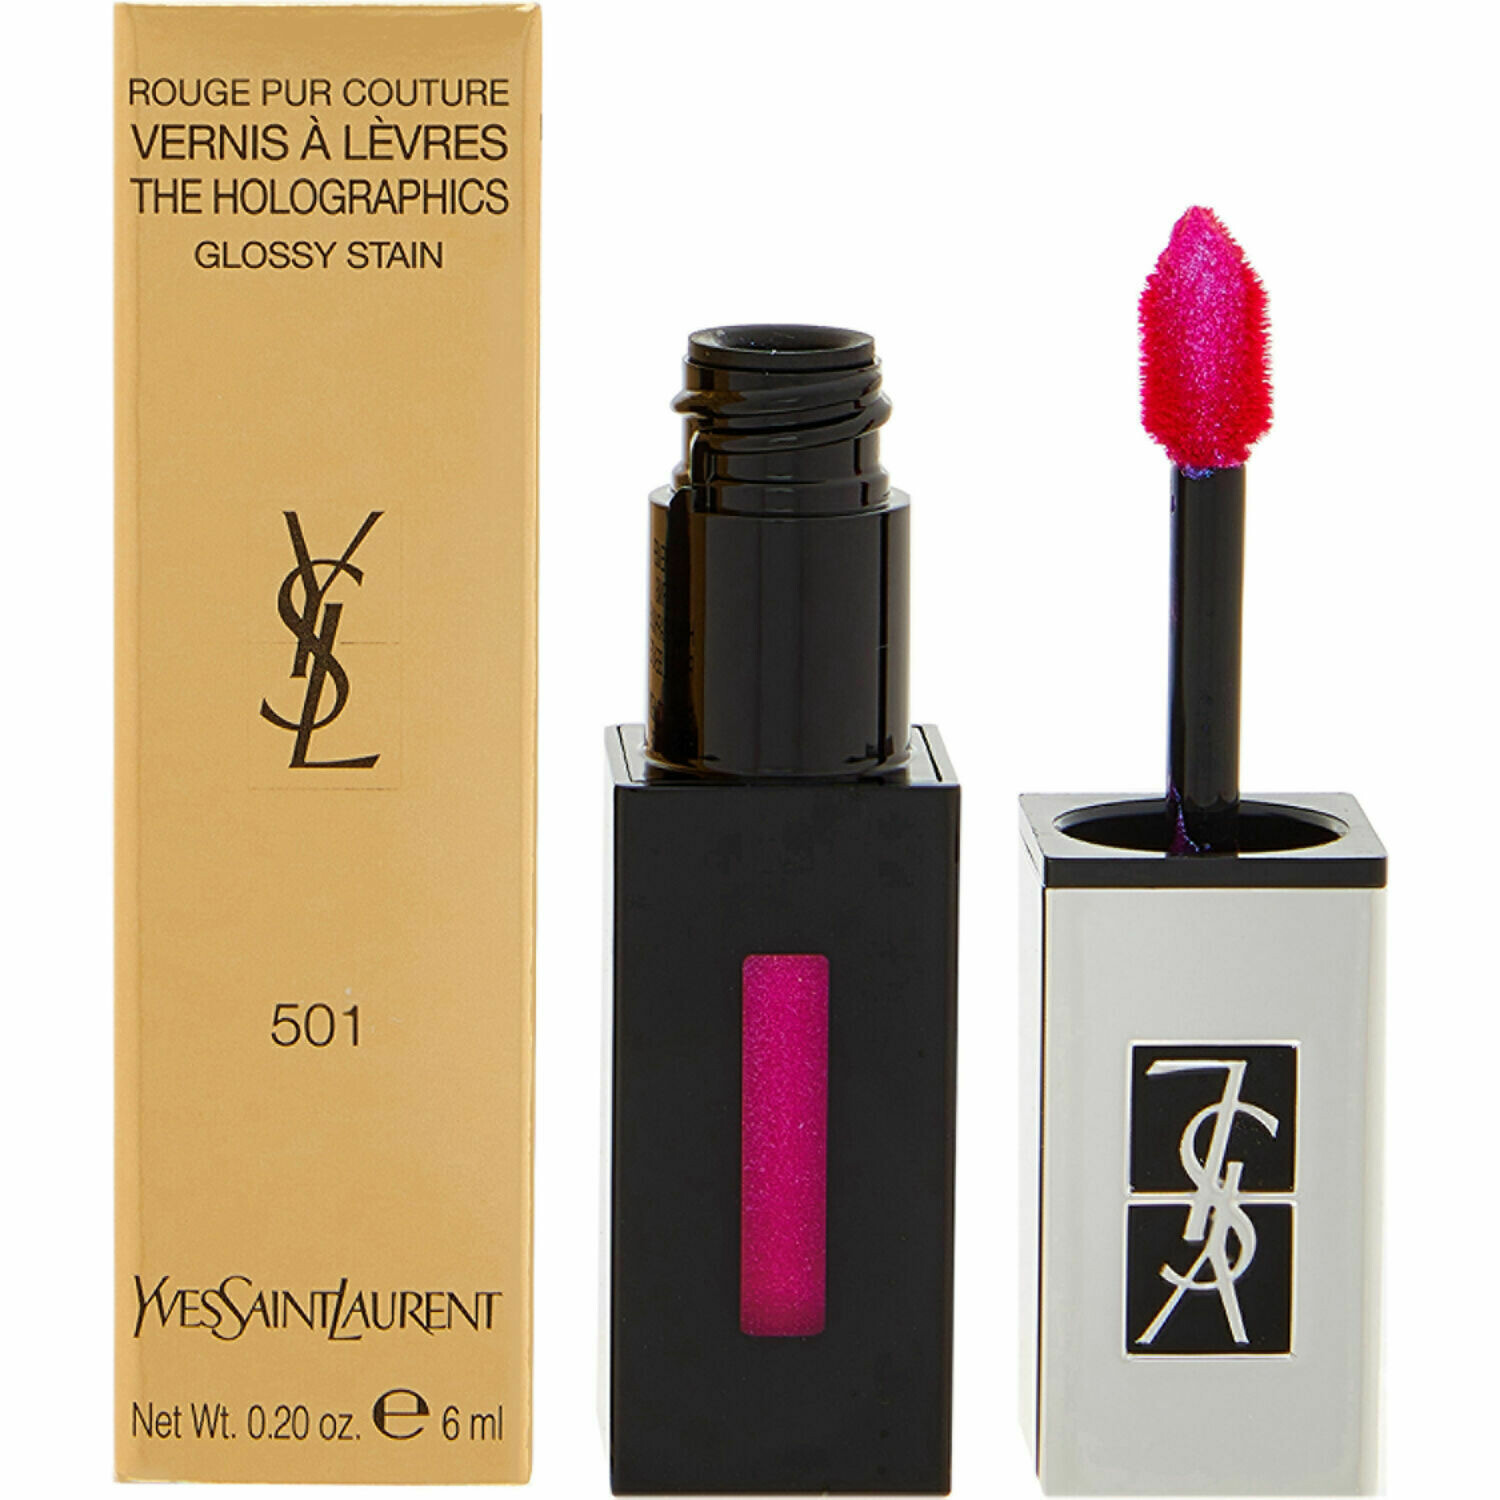 YSL Rouge Pur Couture The Holographics 6ml Glossy Stain